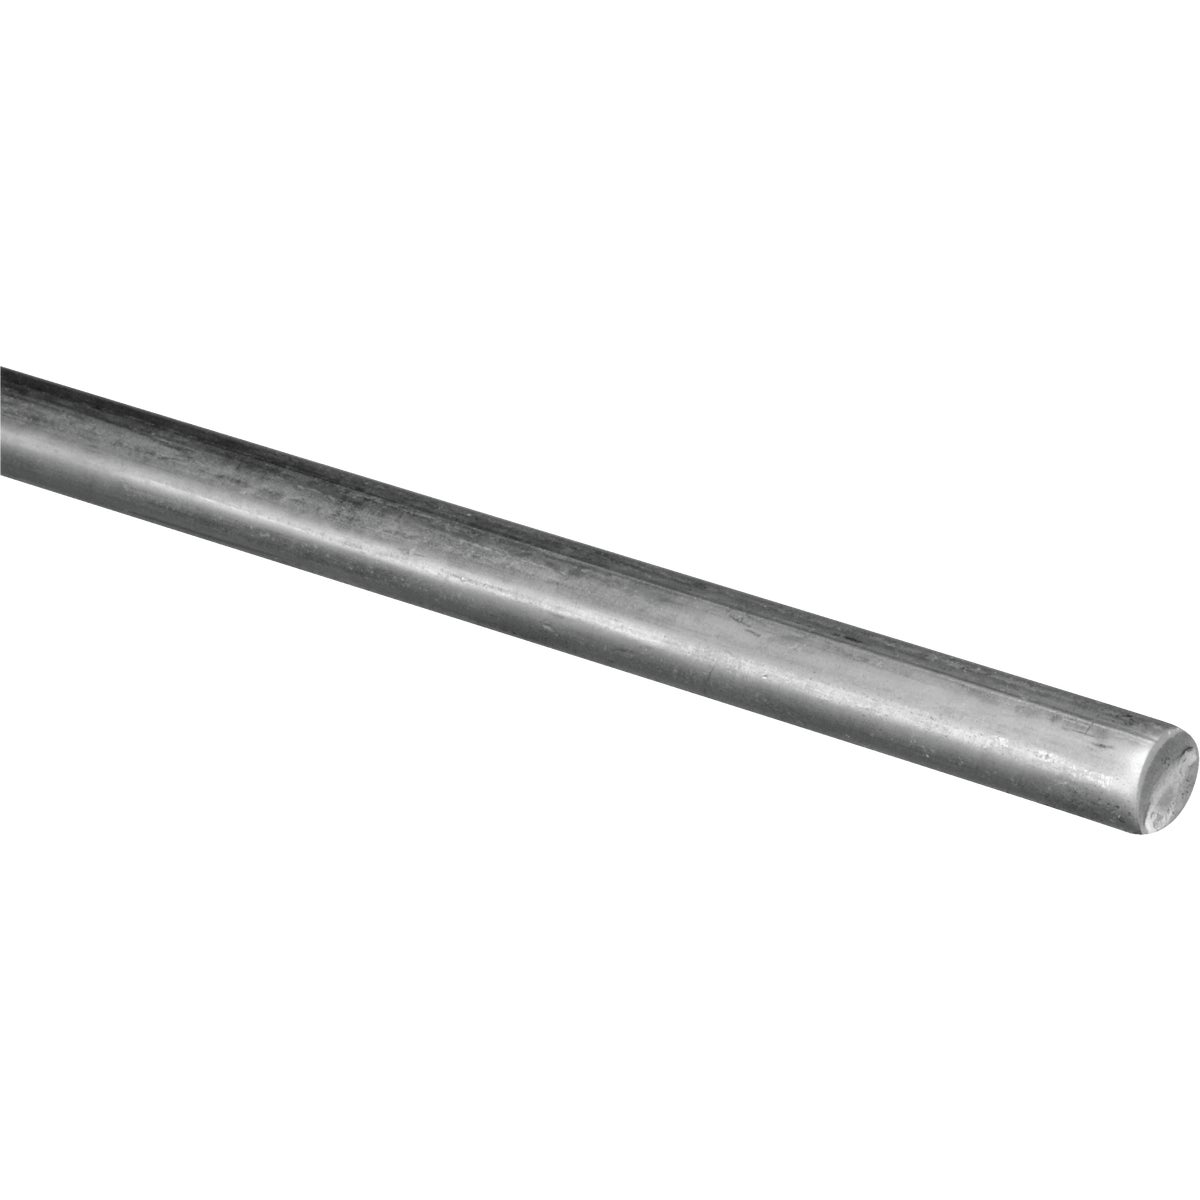 3/16X6' ROUND STEEL ROD - N347955 by National Mfg Co